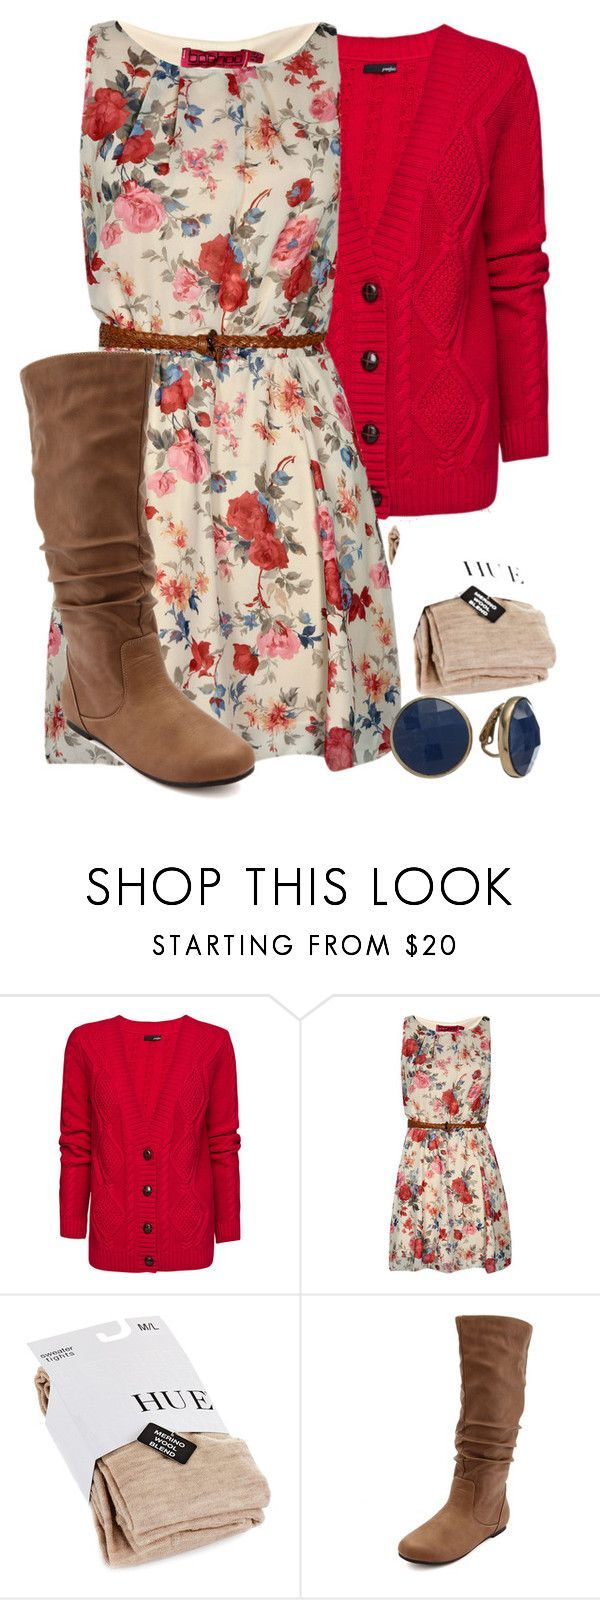 """Teacher Outfits on a Teacher's Budget 149"" by allij28 ❤ liked on Polyvore featuring MANGO, Boohoo, Hue, Charlotte Russe and Dana Buchman"